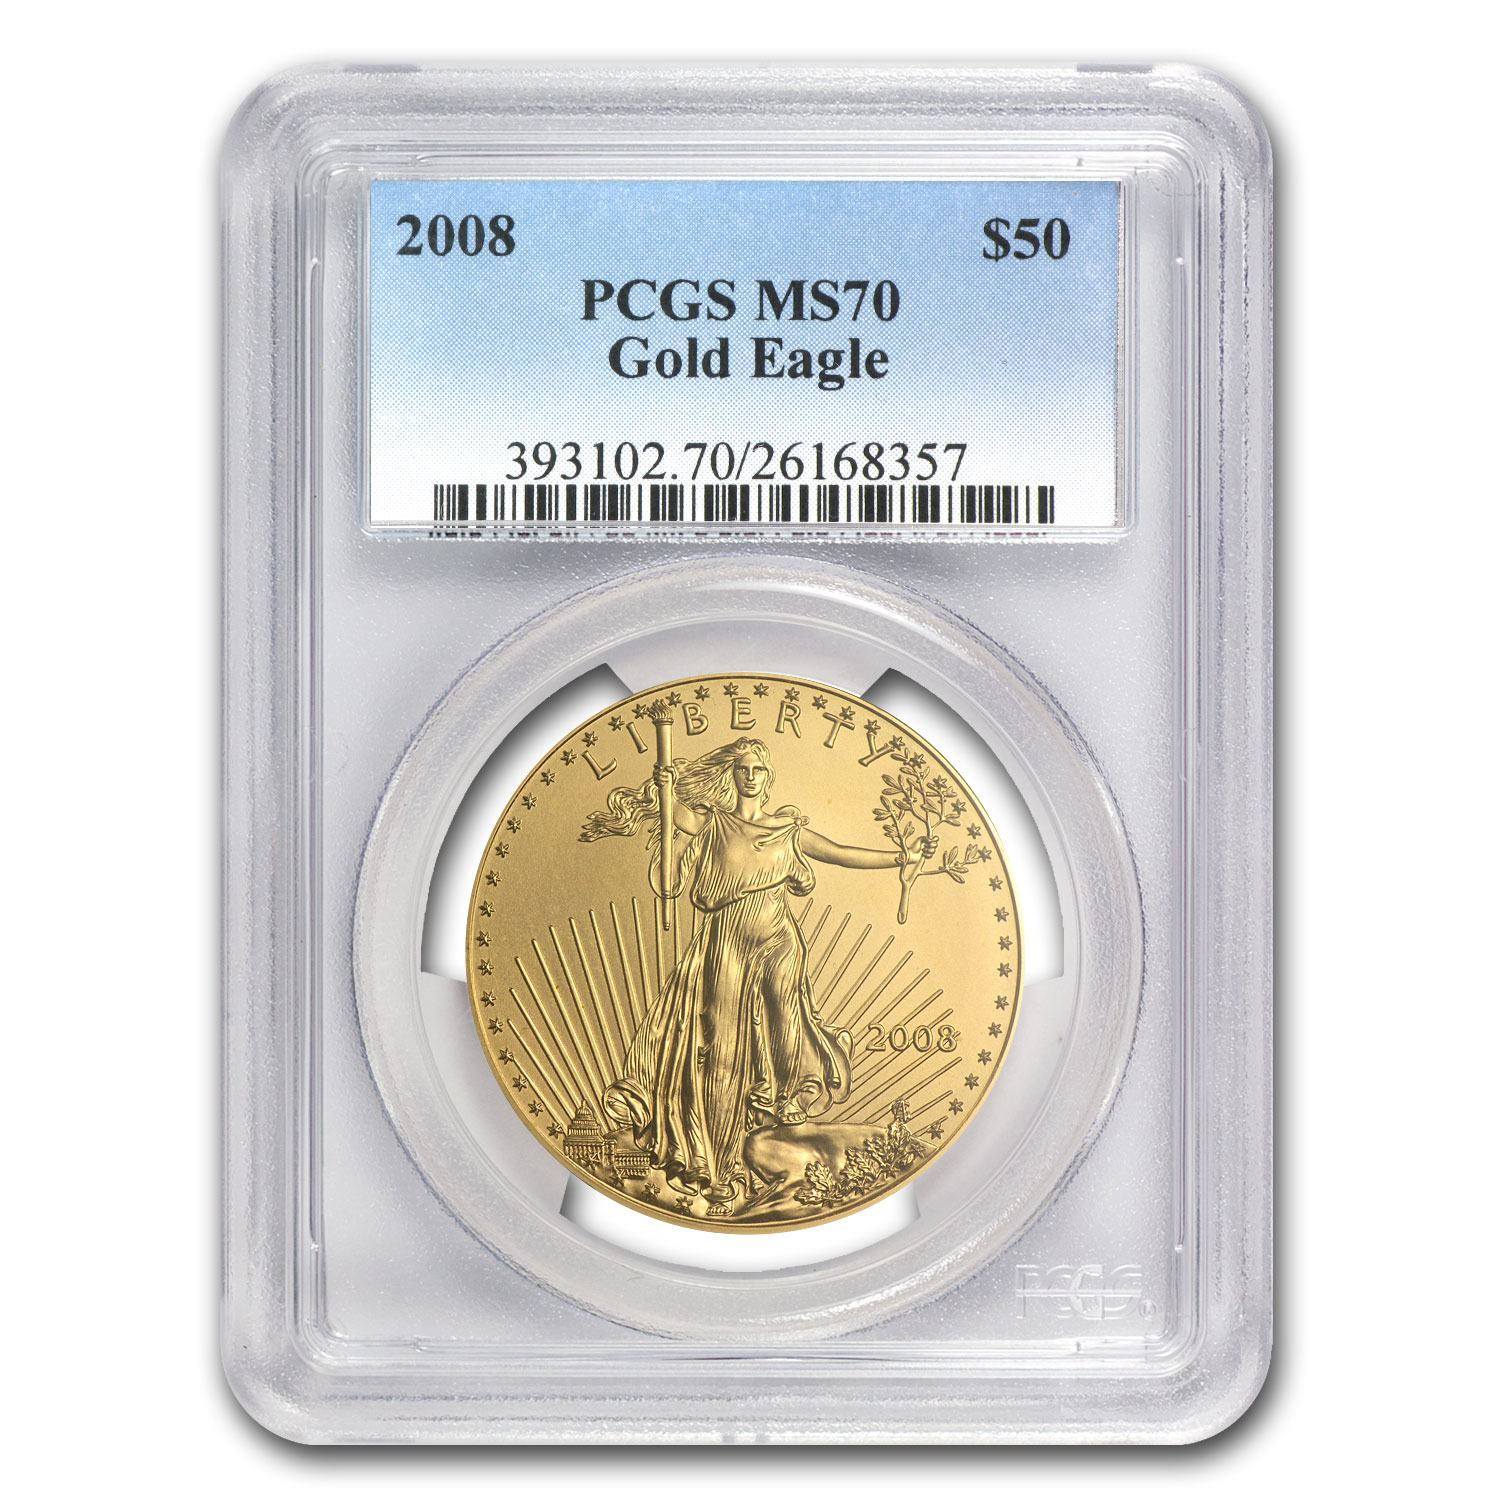 2008 1 oz Gold American Eagle MS-70 PCGS